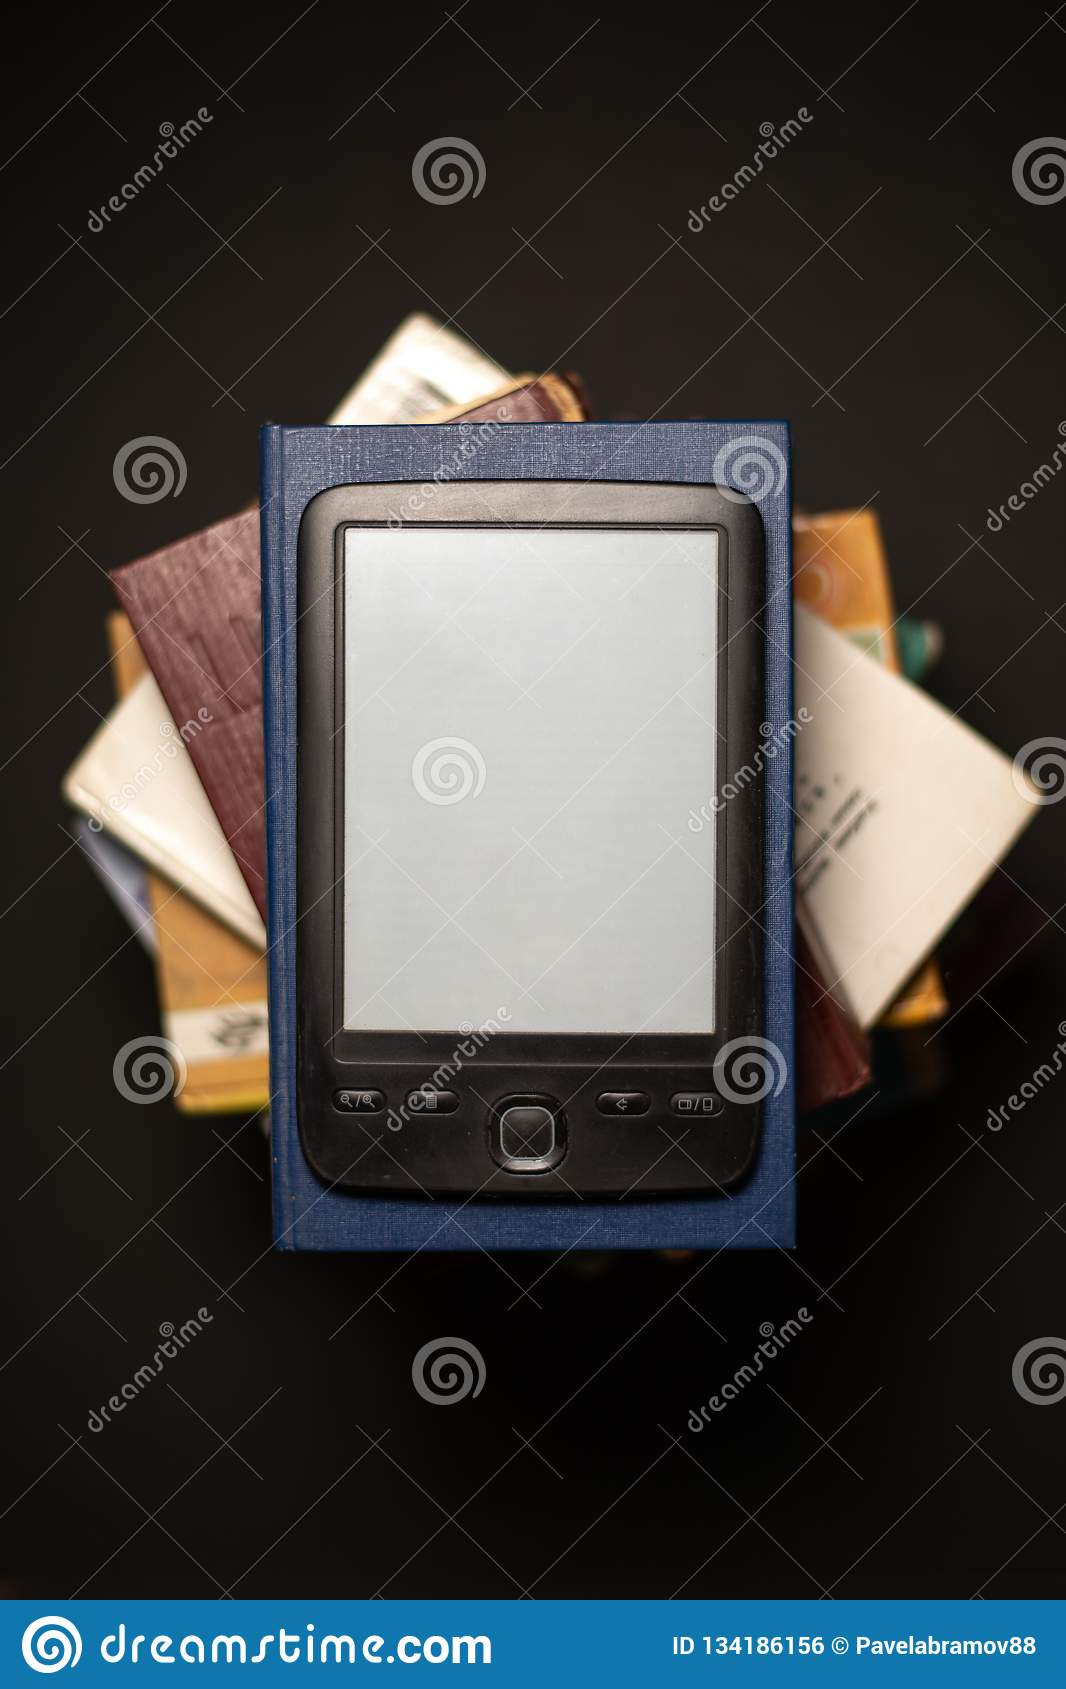 E-book on a stack of ordinary paper books